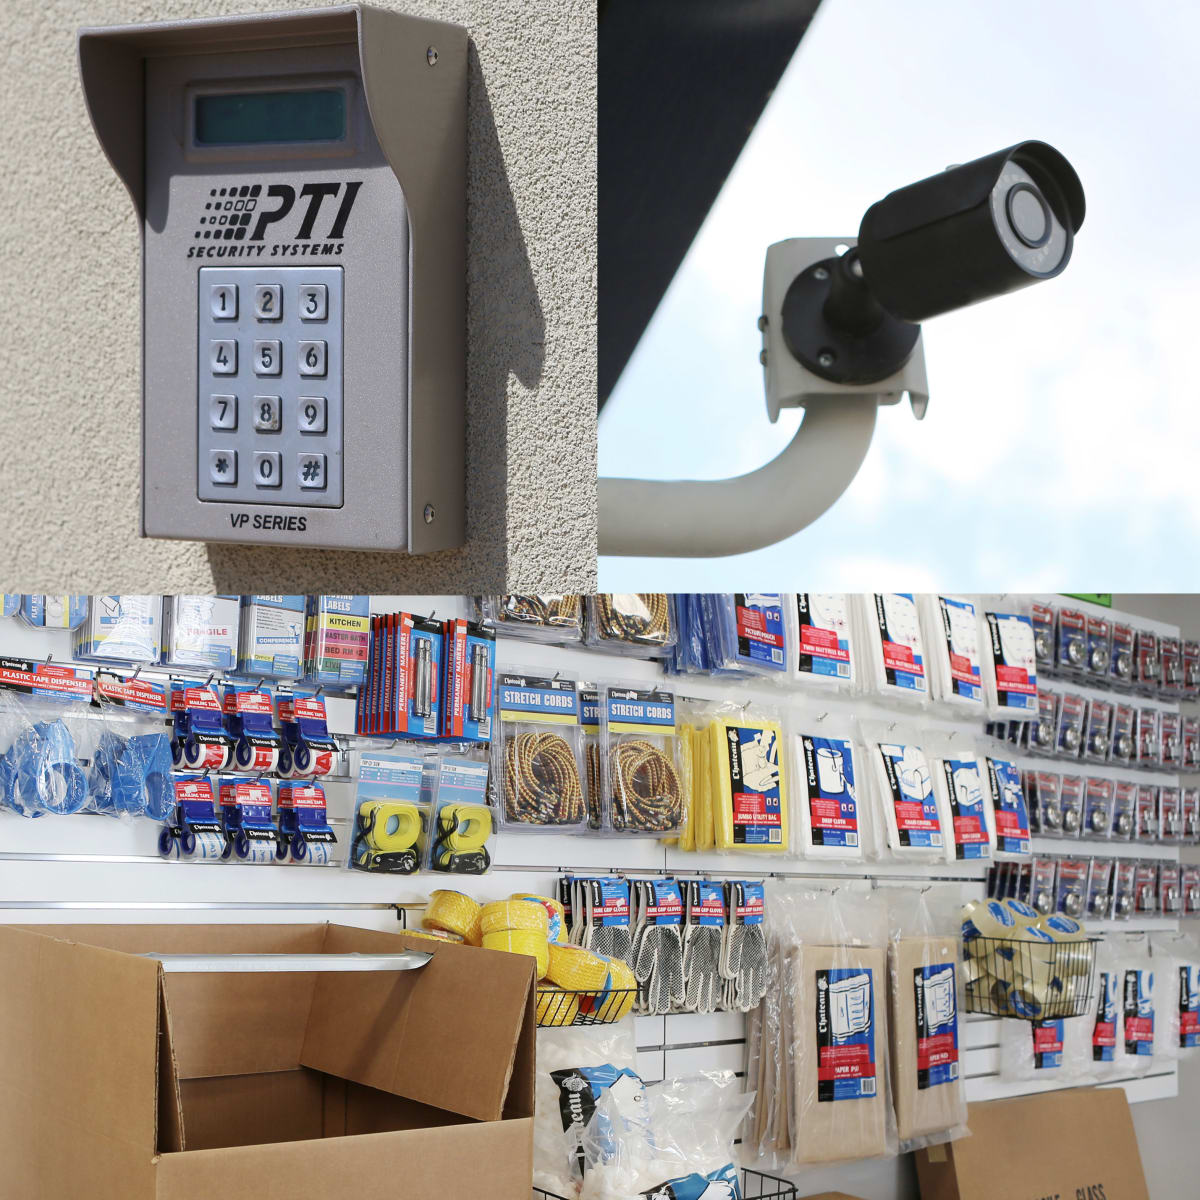 We provide 24 hour security monitoring and sell various moving and packing supplies at Midgard Self Storage in Roswell, Georgia